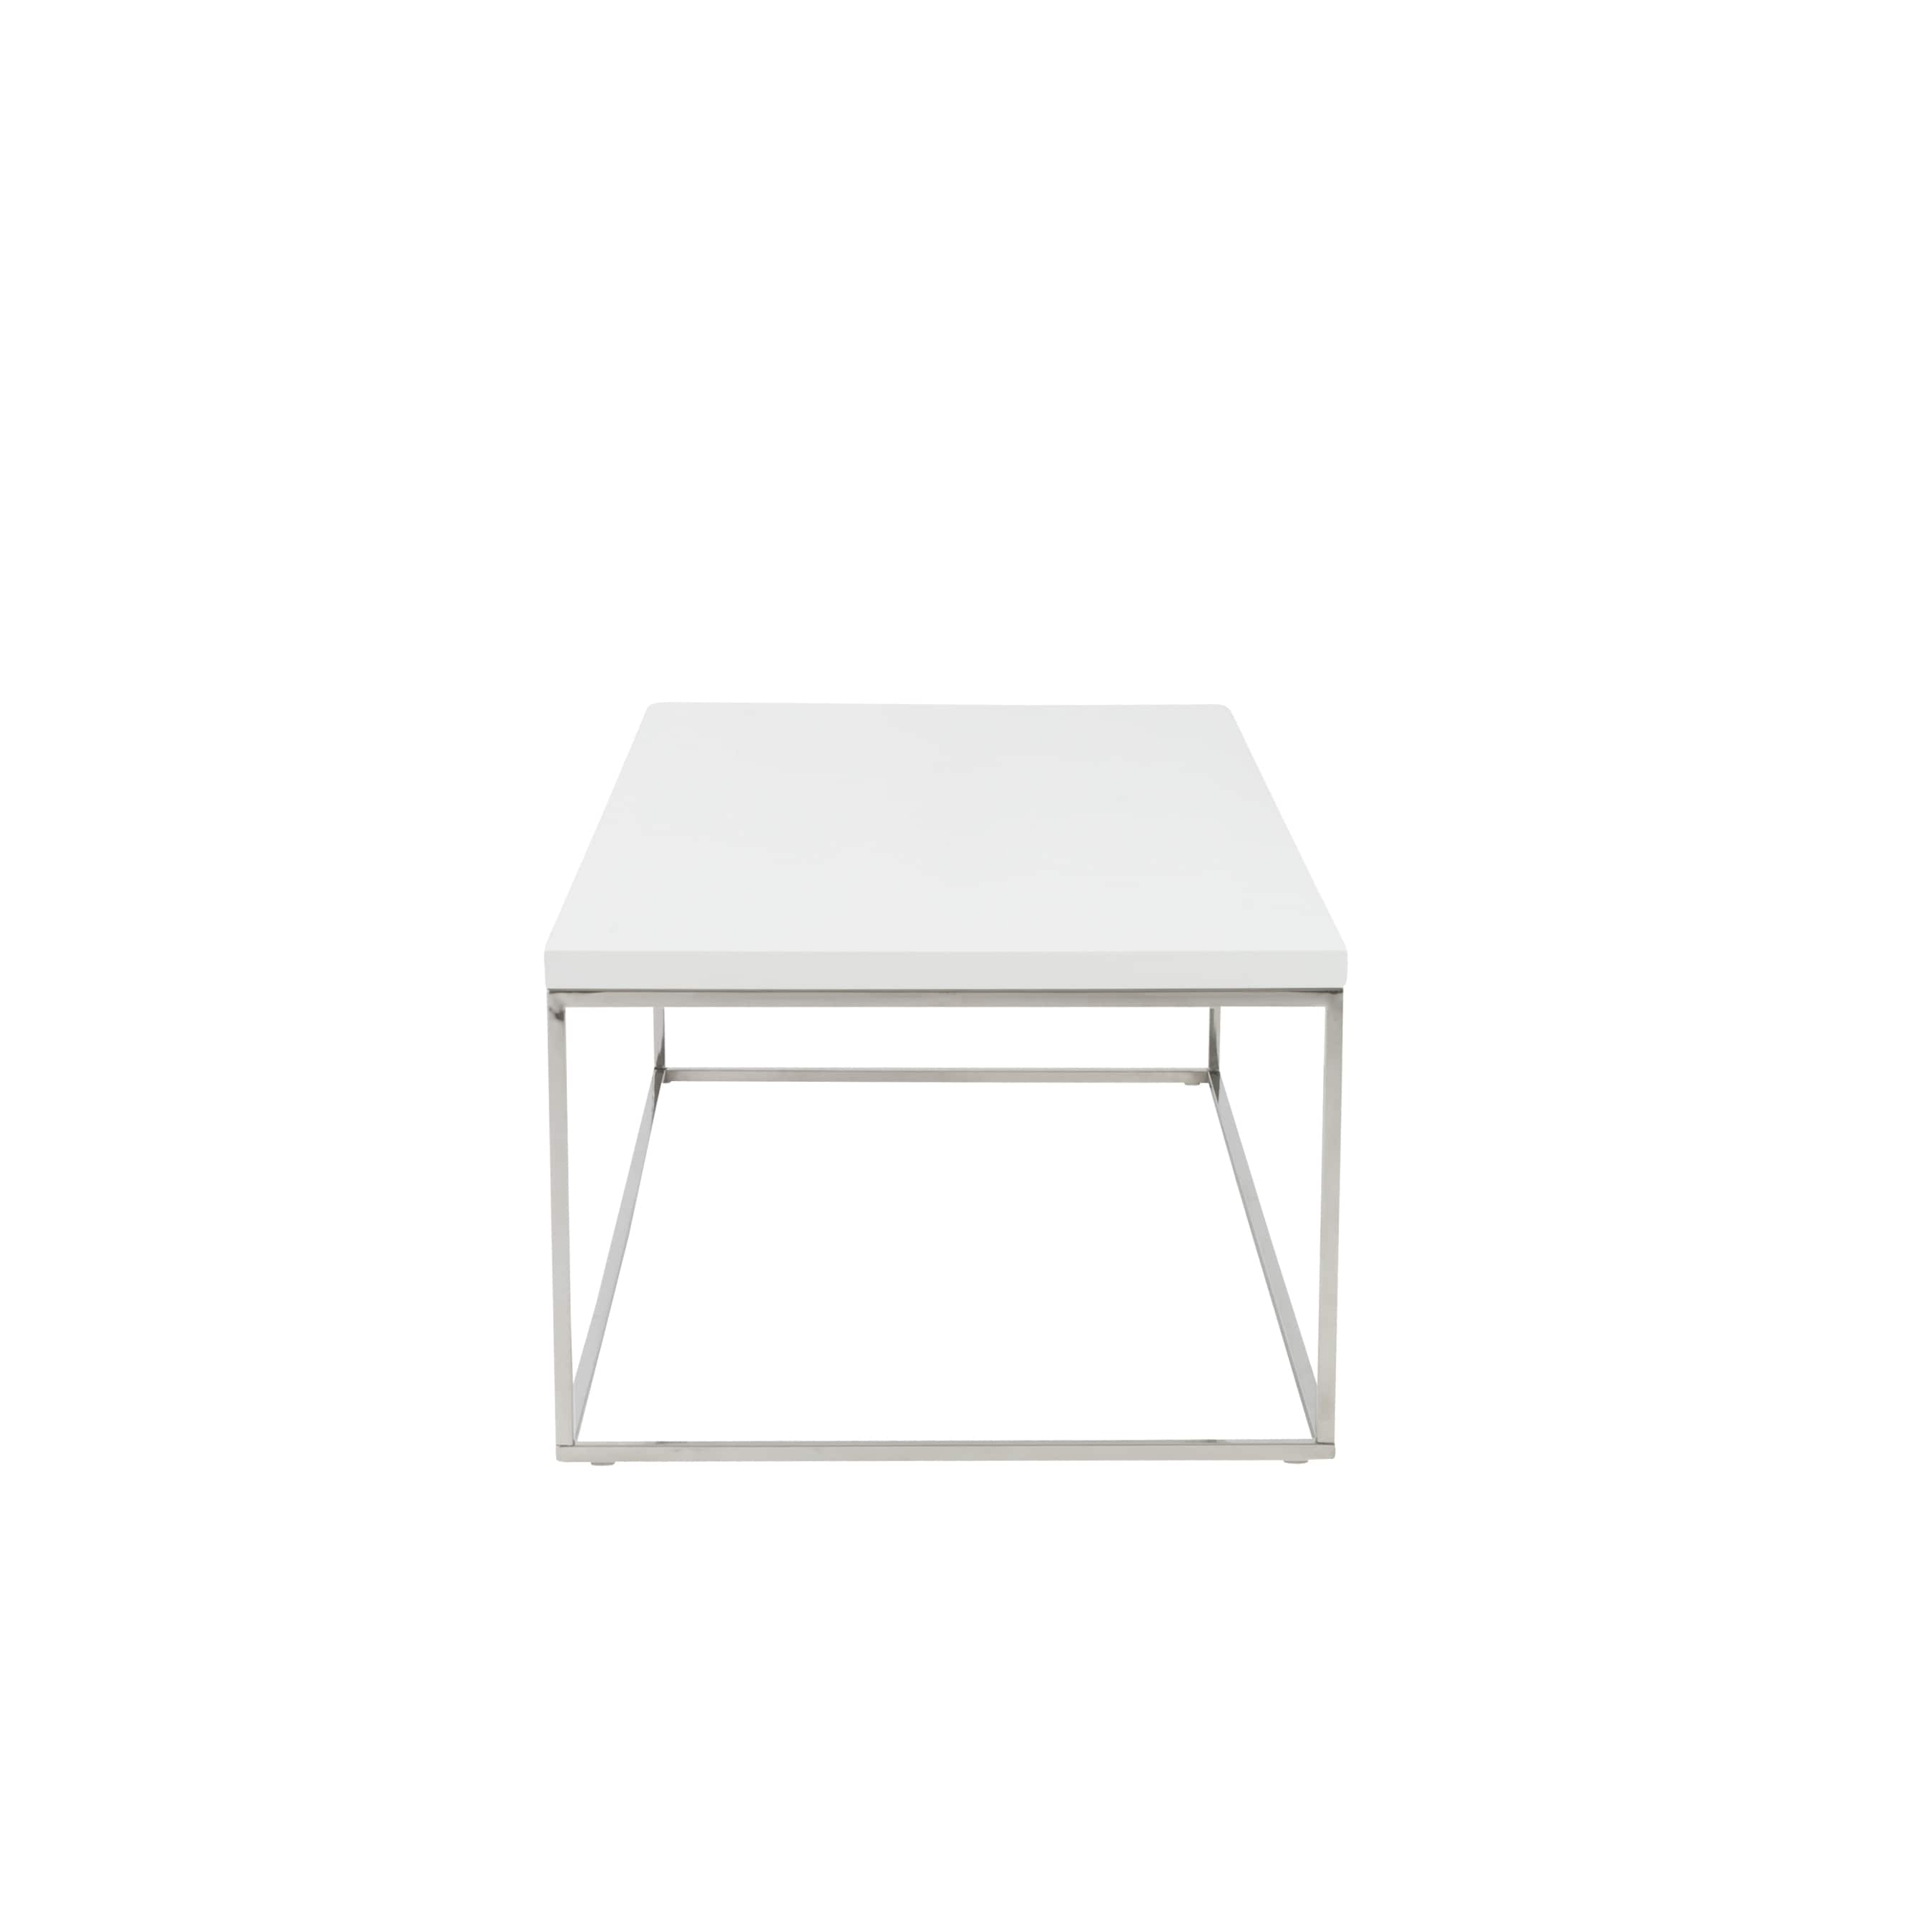 end rectangle product polished shipping teresa steel coffee home tables base garden overstock table today style in white free euro stainless with